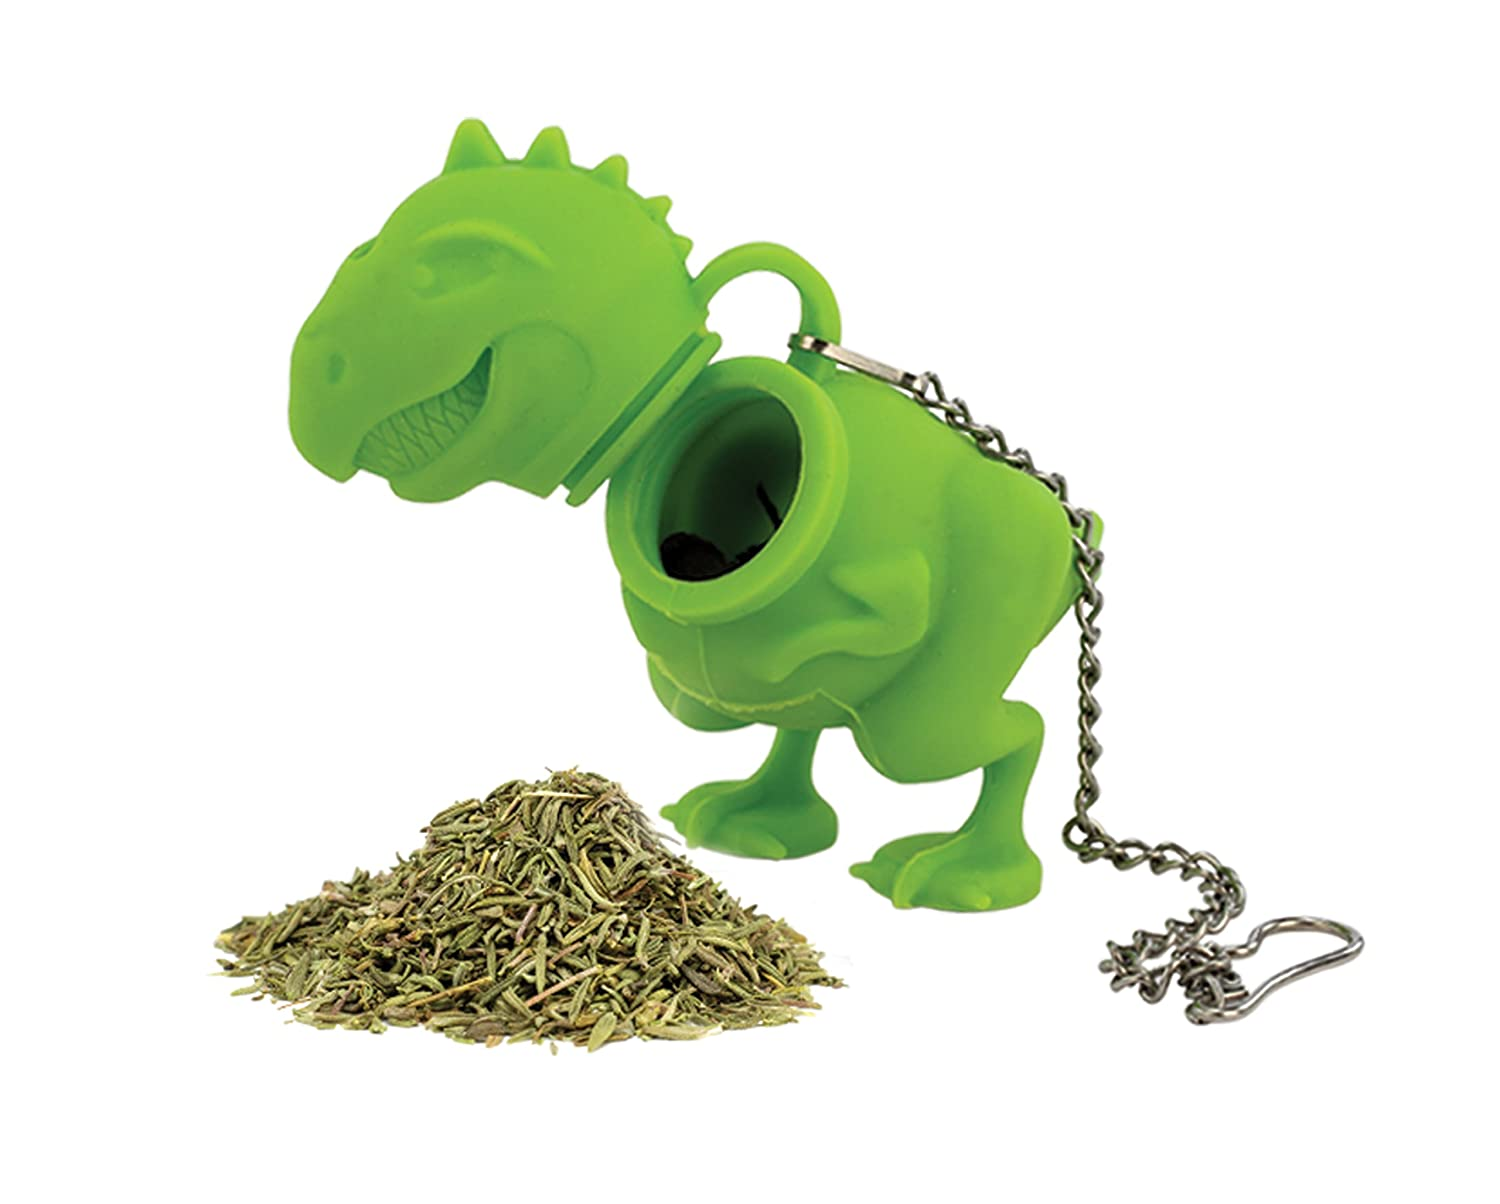 Barbuzzo T-Rex Tea Infuser - Tyrannosaurus Rex Shaped Portable Loose Leaf Tea Filter with Hanging Chain - Perfect for Tea and Dinosaur Enthusiasts UTU3GI0026